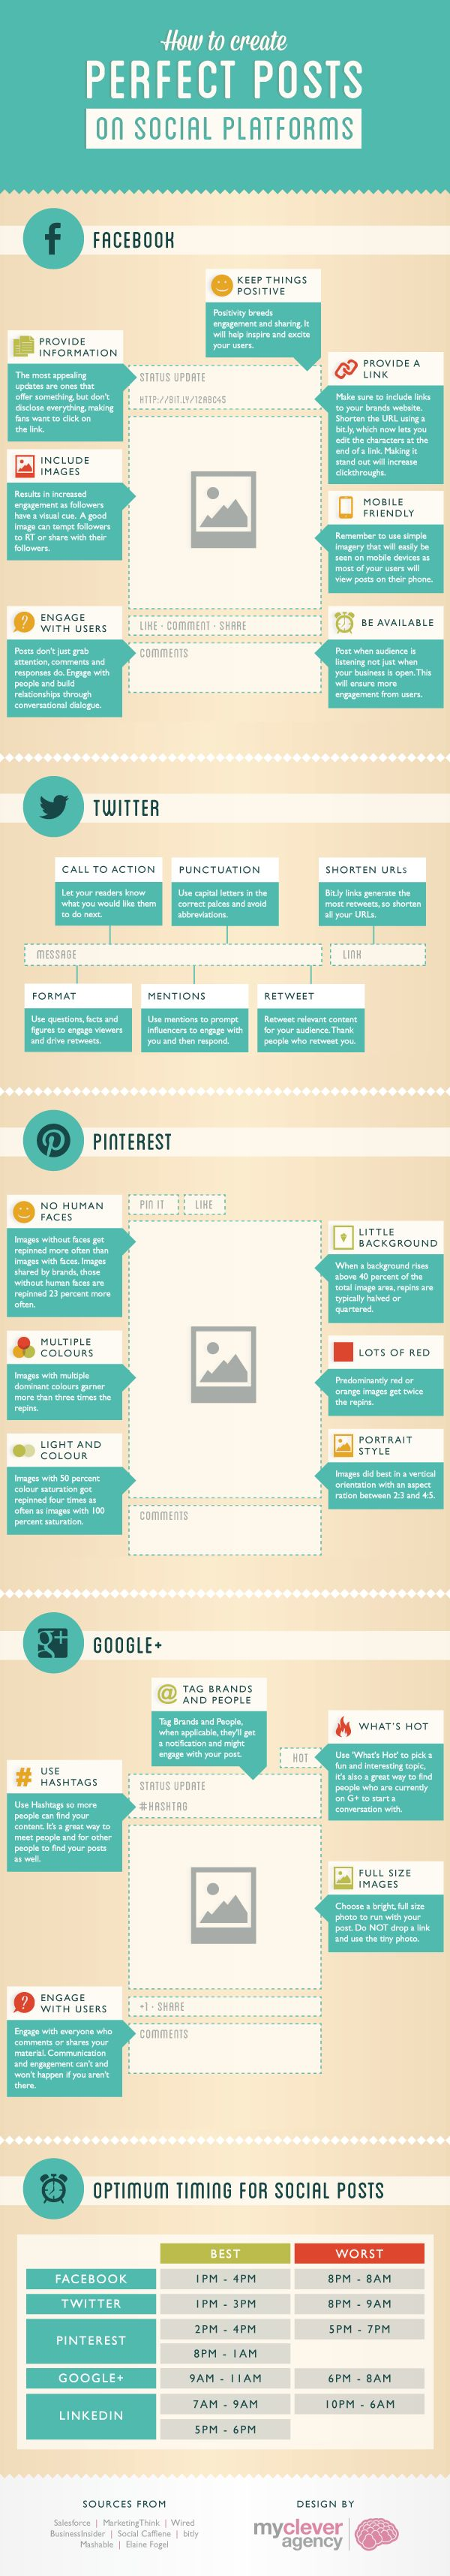 Infographic: How to Write the Perfect Social Media Post